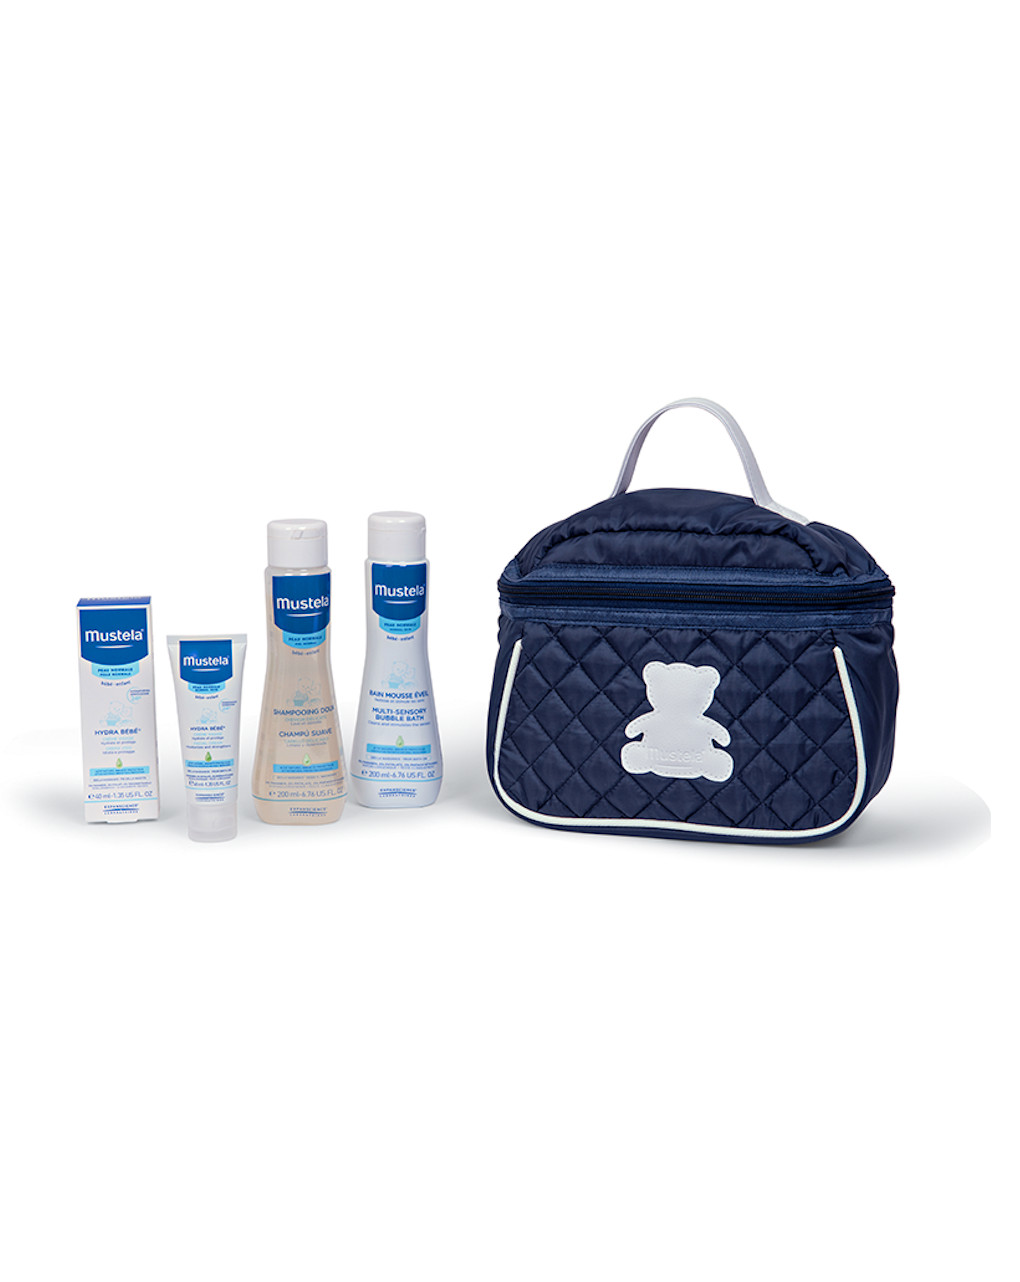 Beauty case vanity set - Mustela